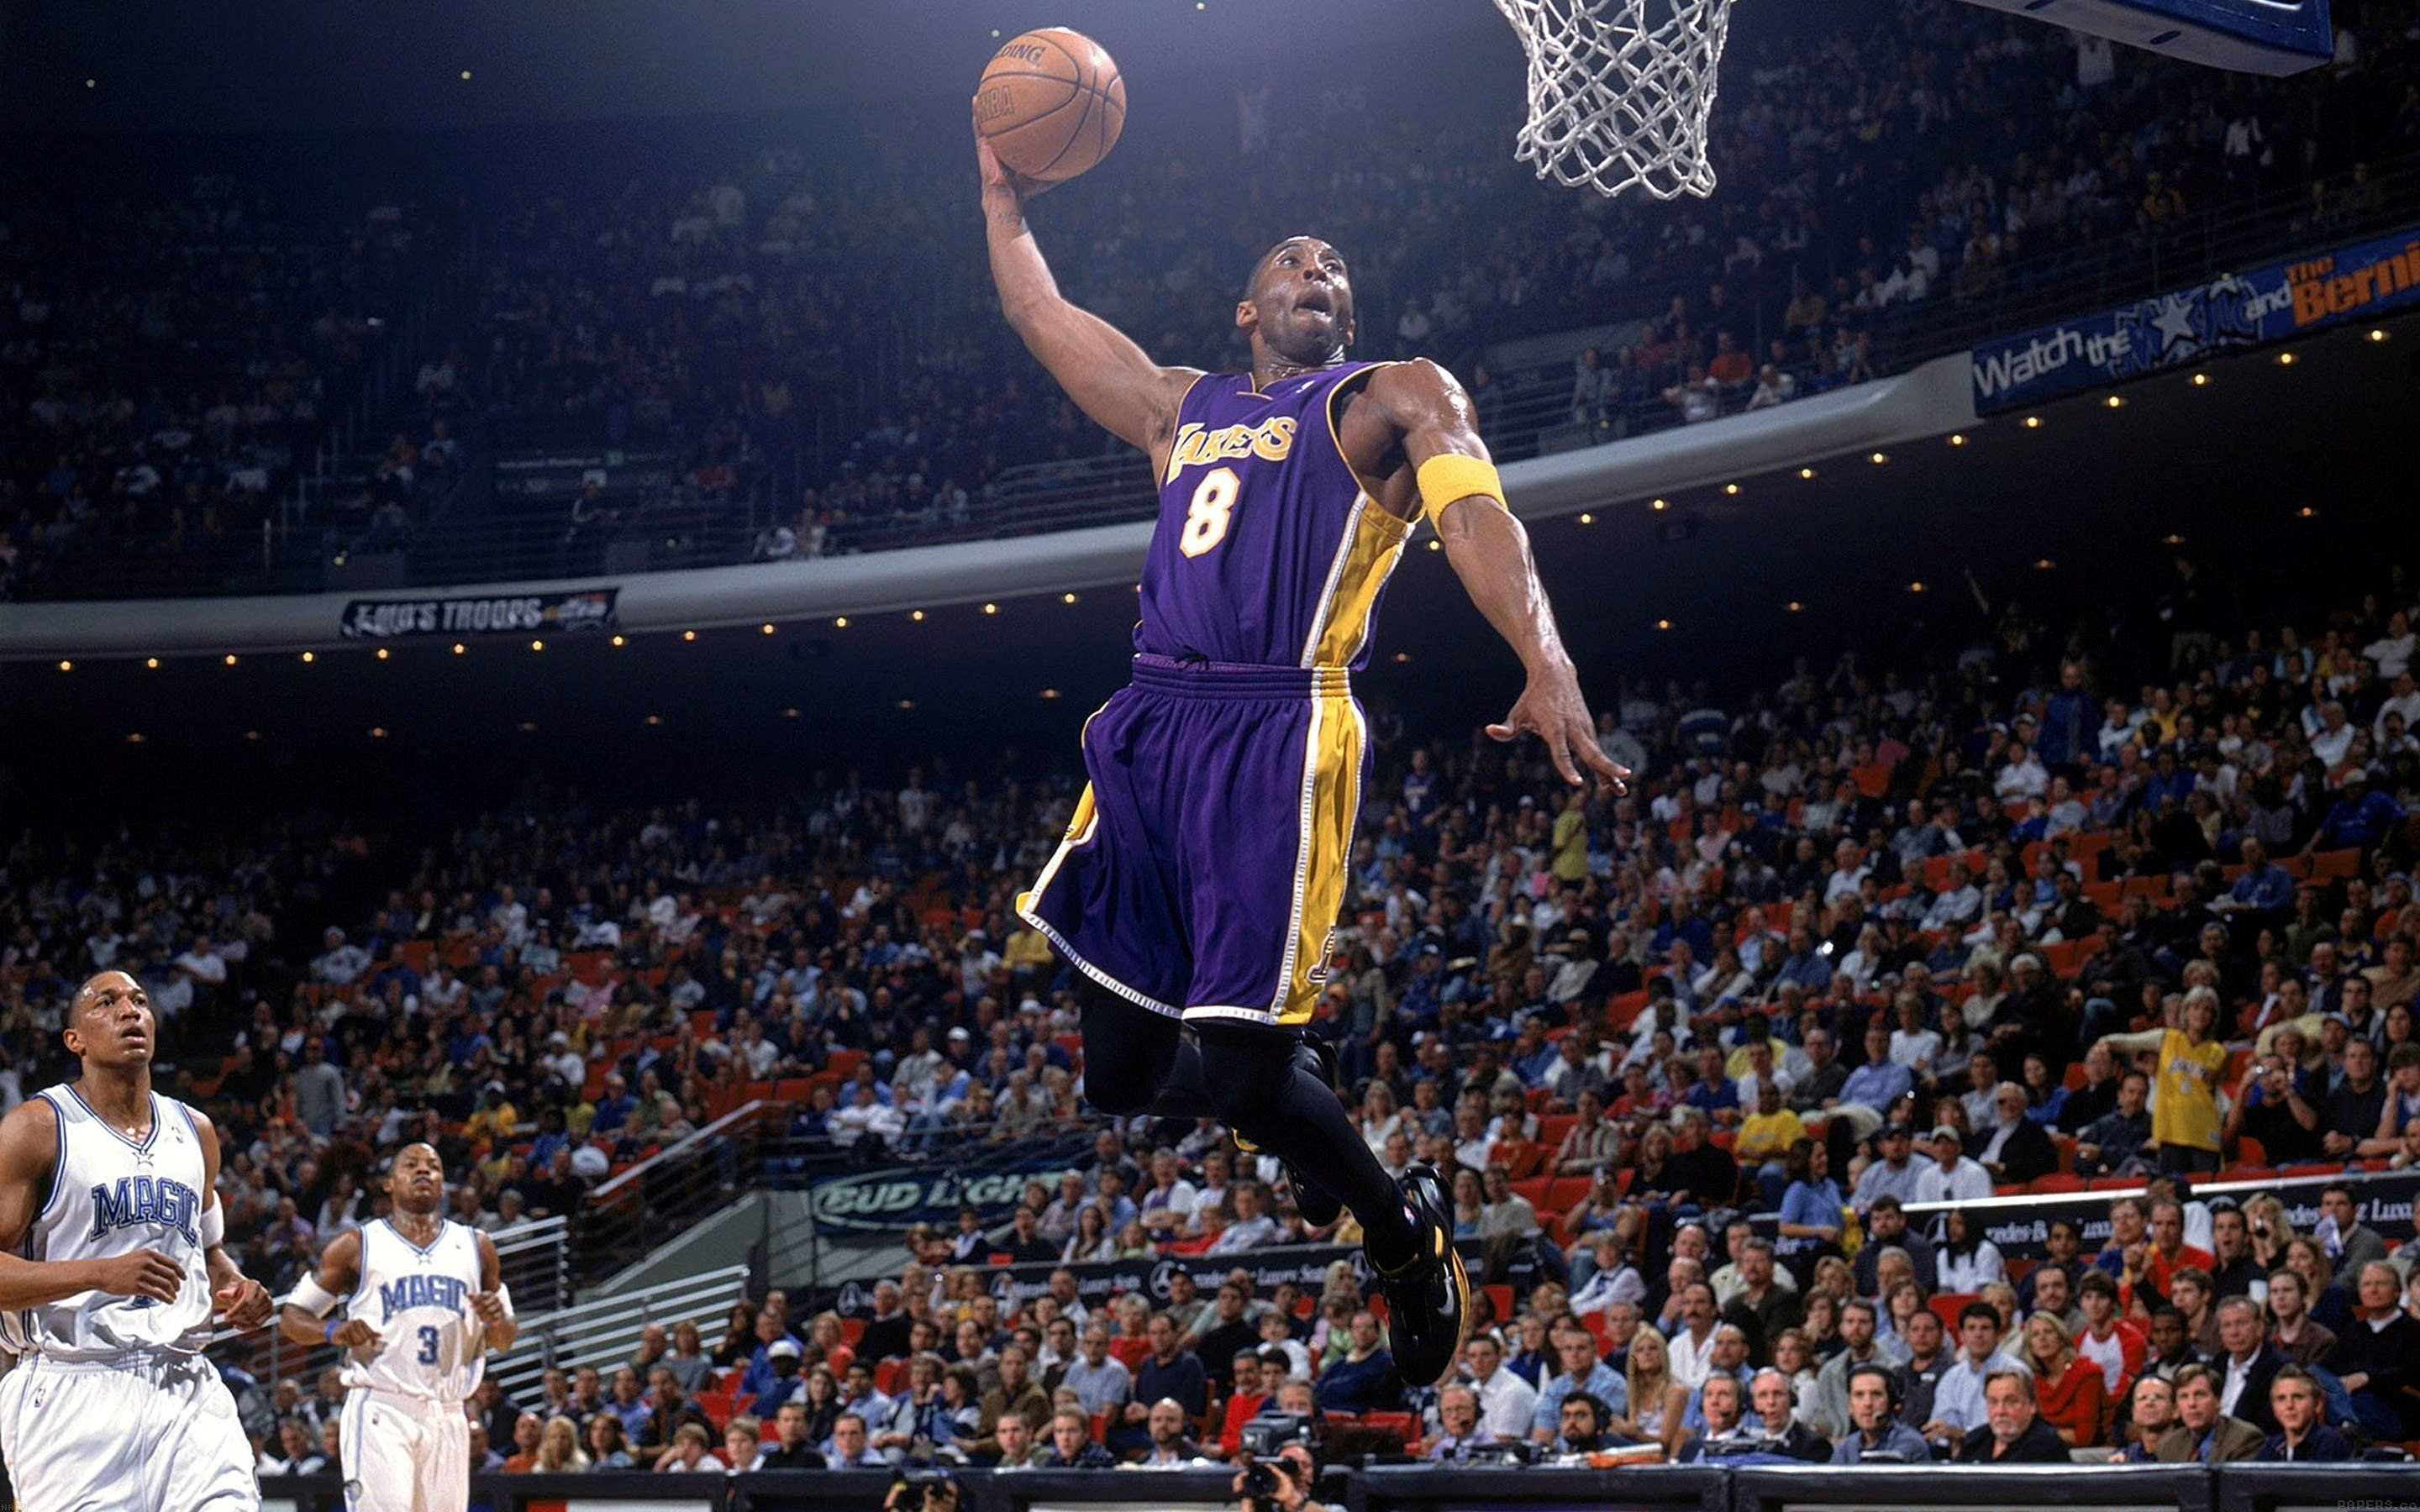 Kobe Bryant Dunk Wallpaper Photo Is Cool Wallpapers Kobe